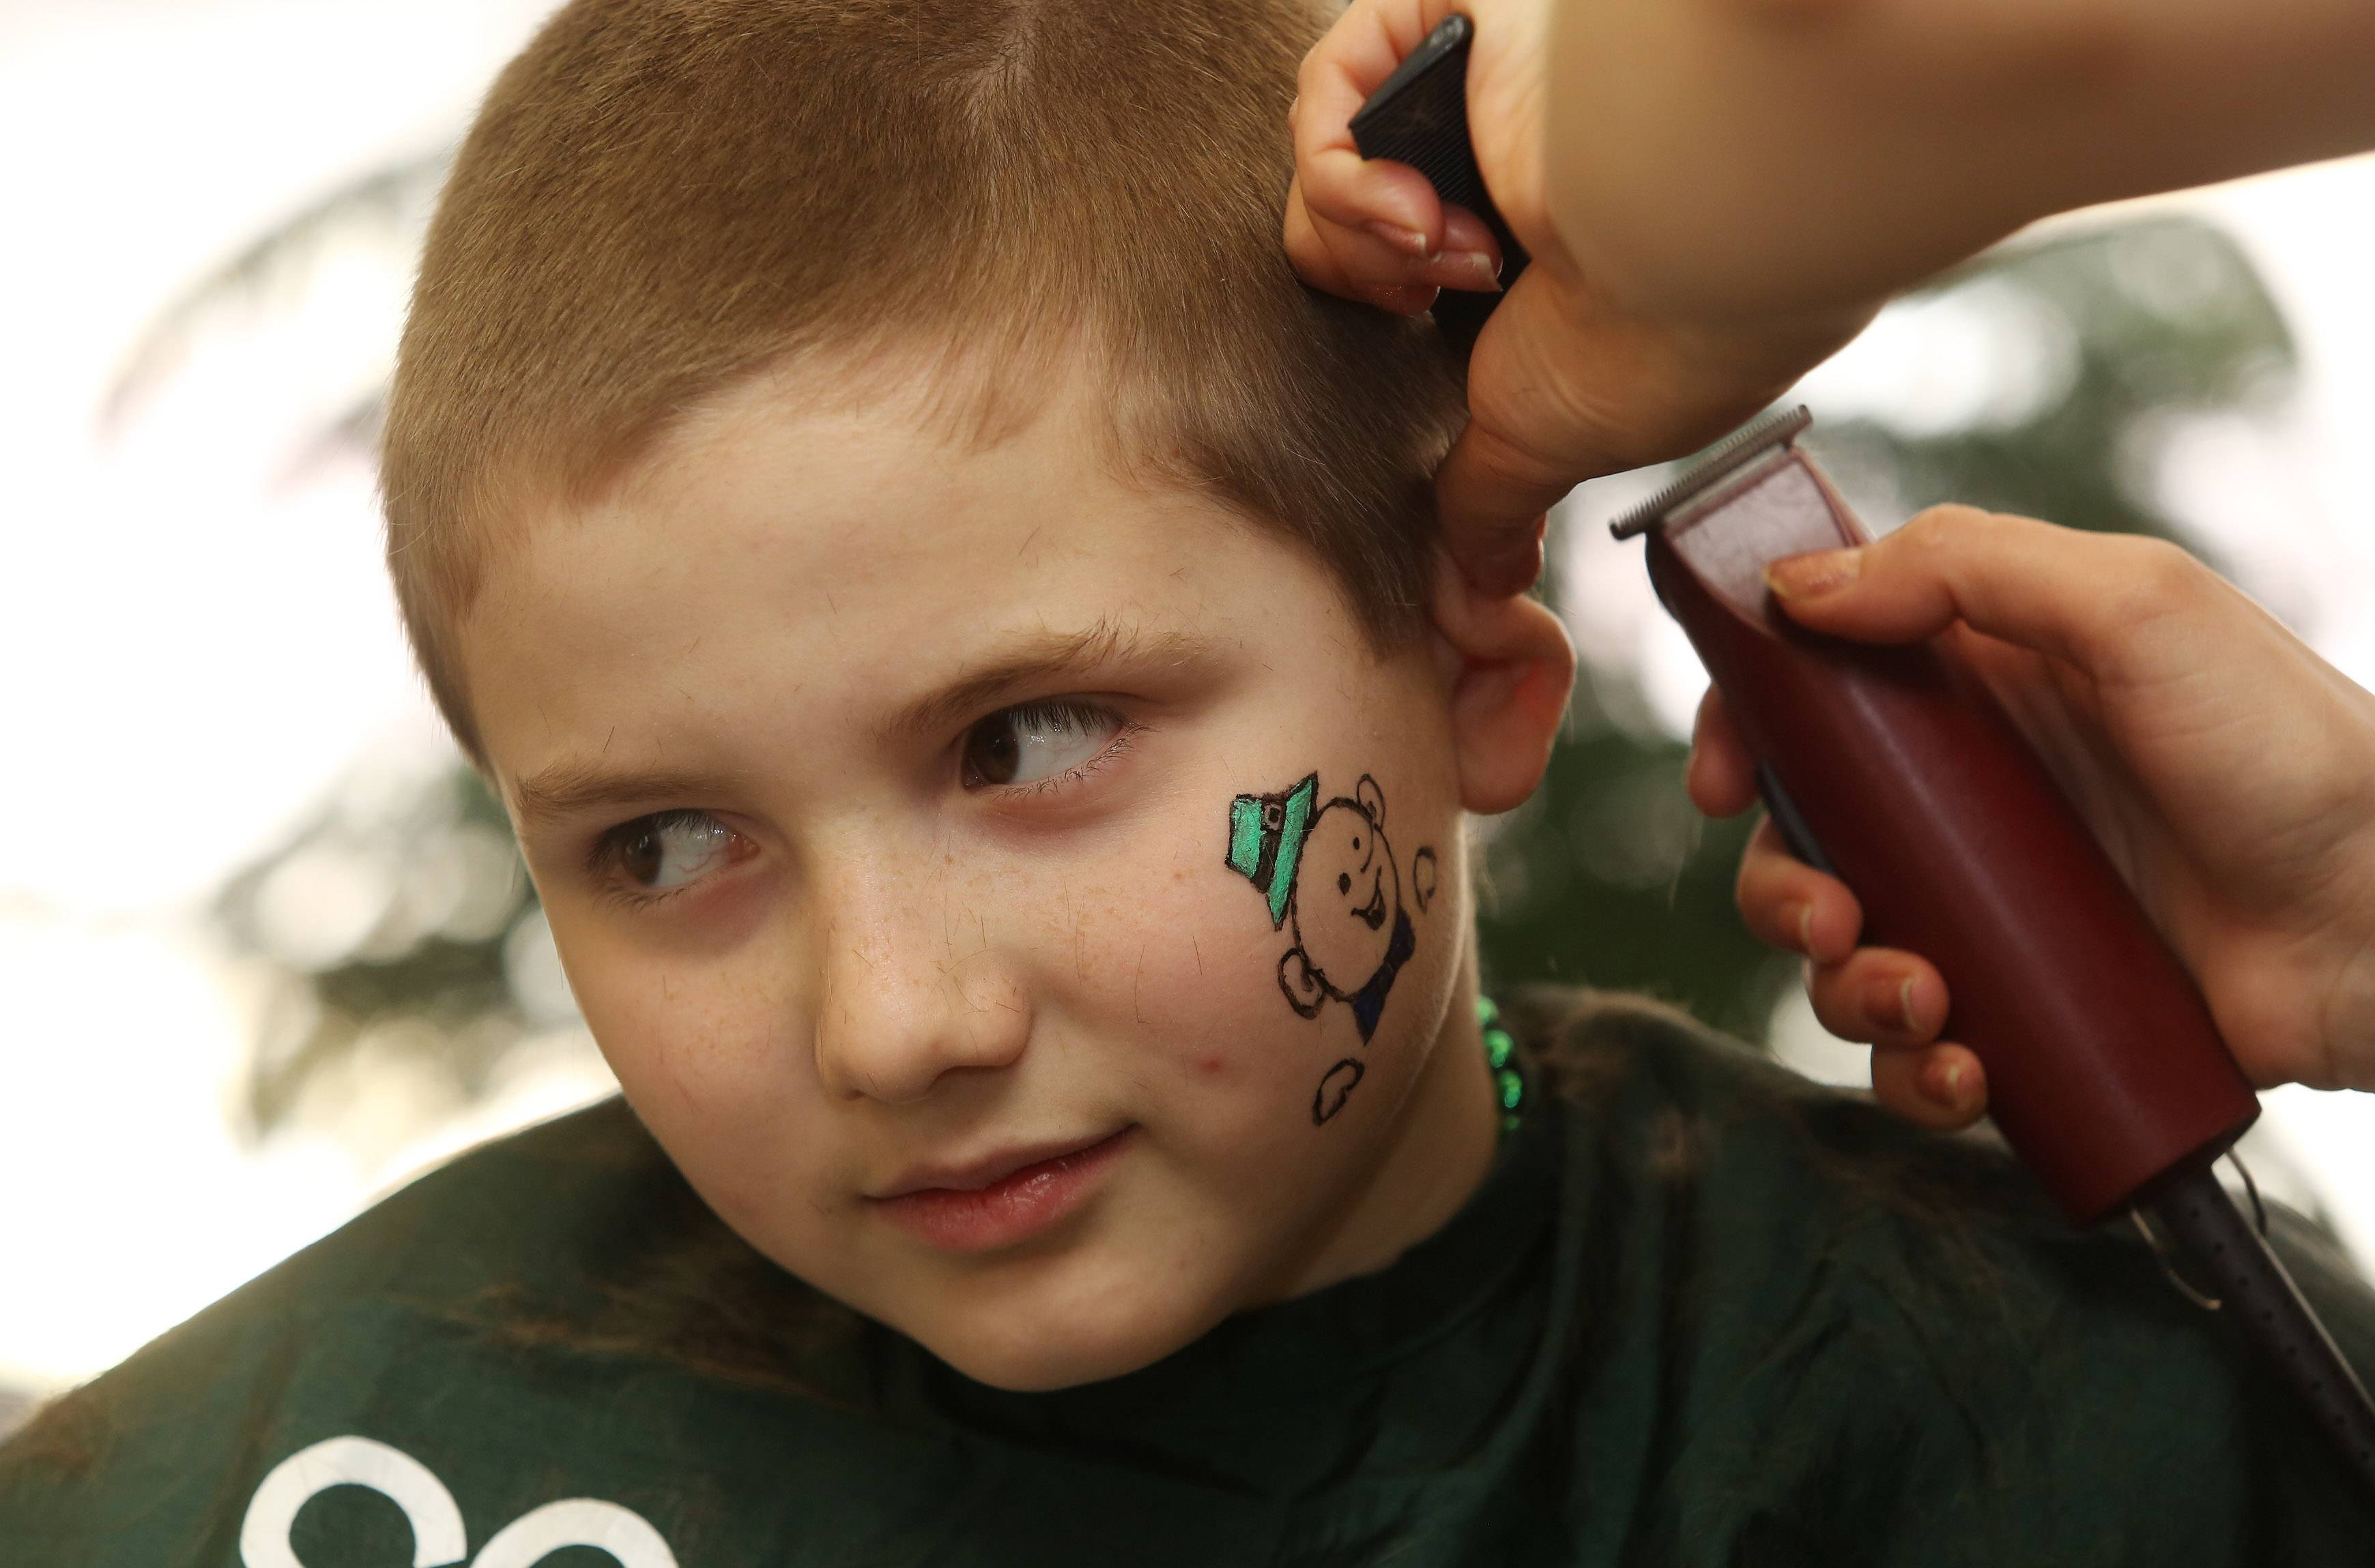 Jason Sabatino, 10, of Carpentersville has his head shaved during a St. Baldrick's fundraiser Sunday at International Hair Designs in Lake Zurich. The event was in honor of cancer patient Rosie Colucci, 9, of Palatine.